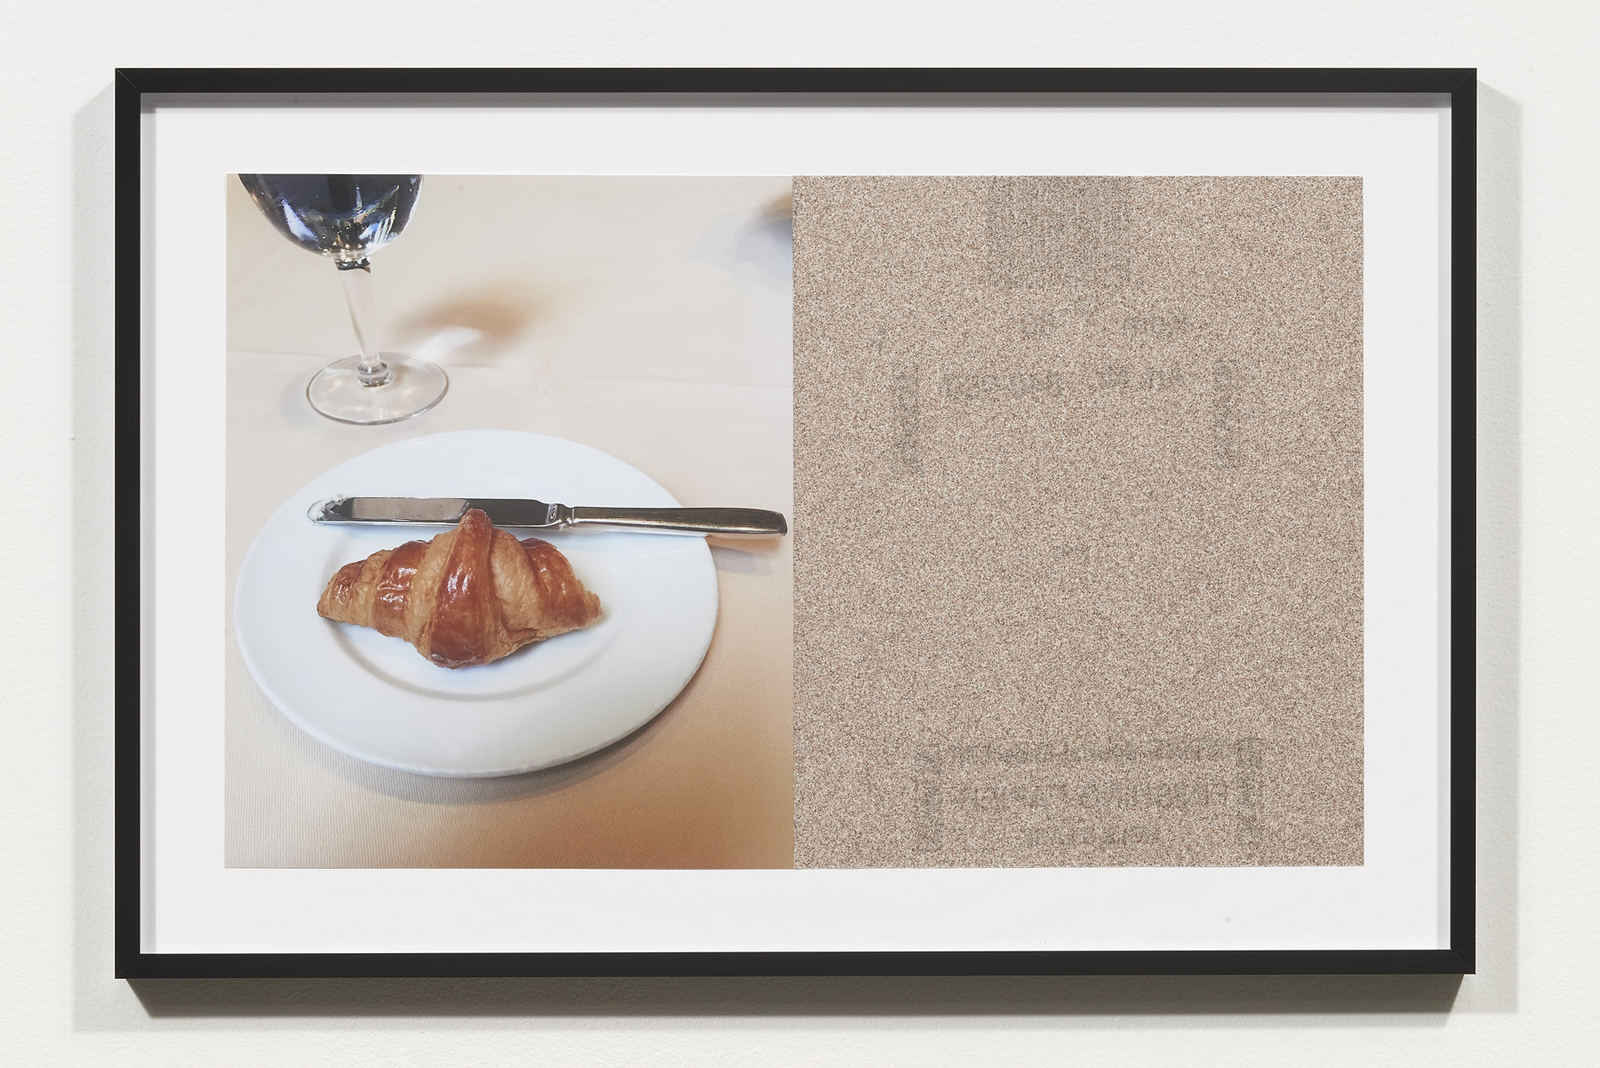 Wermers_Croissants & Architecture #24, 2016_C-print, sandpaper sheet, framed_14 3_8 x 21 1_2 in_NW00065PG